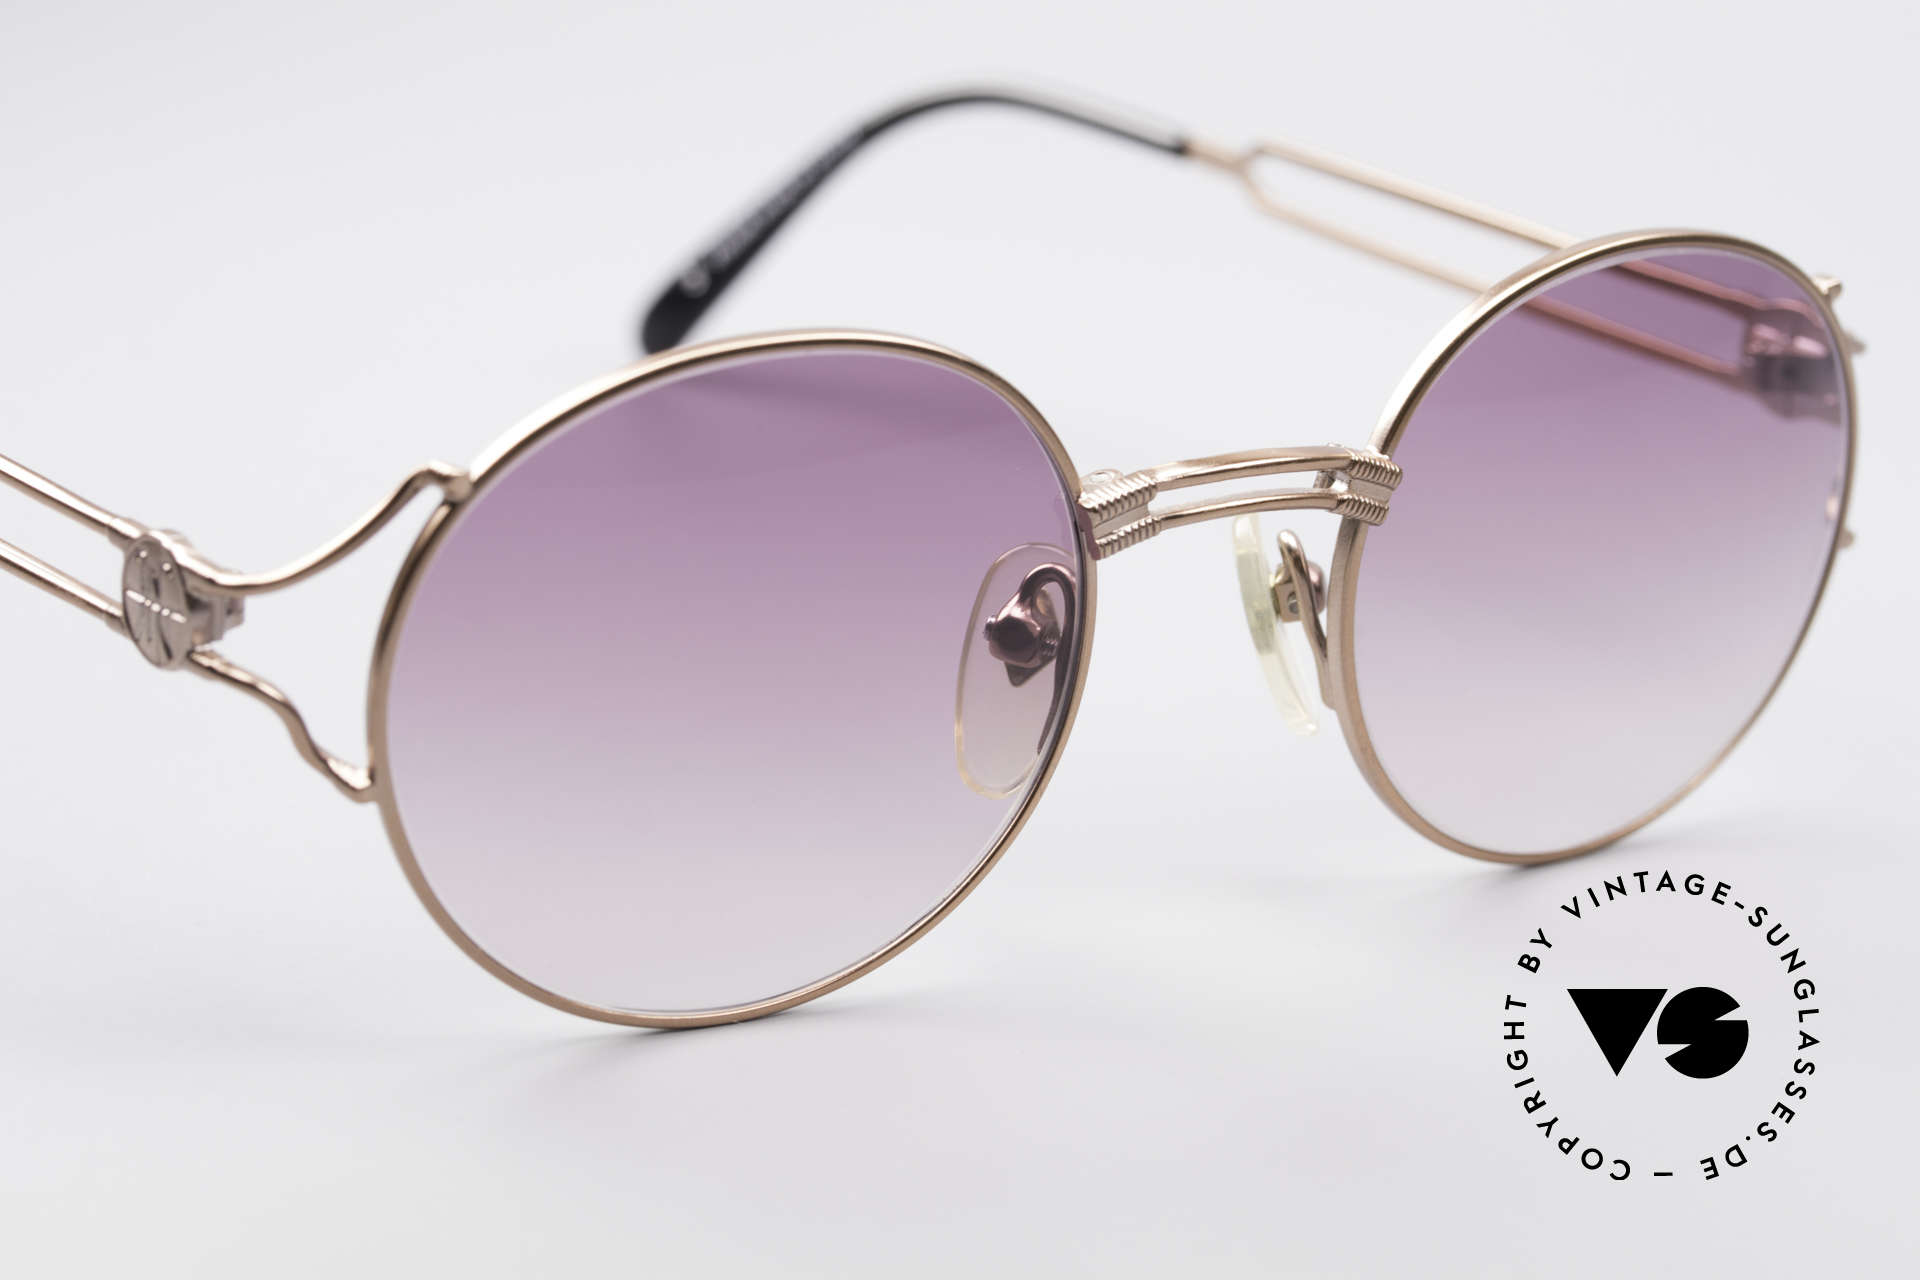 Jean Paul Gaultier 57-6102 Round Designer Sunglasses, NO RETRO shades; but an old JPG ORIGINAL from 1996, Made for Men and Women